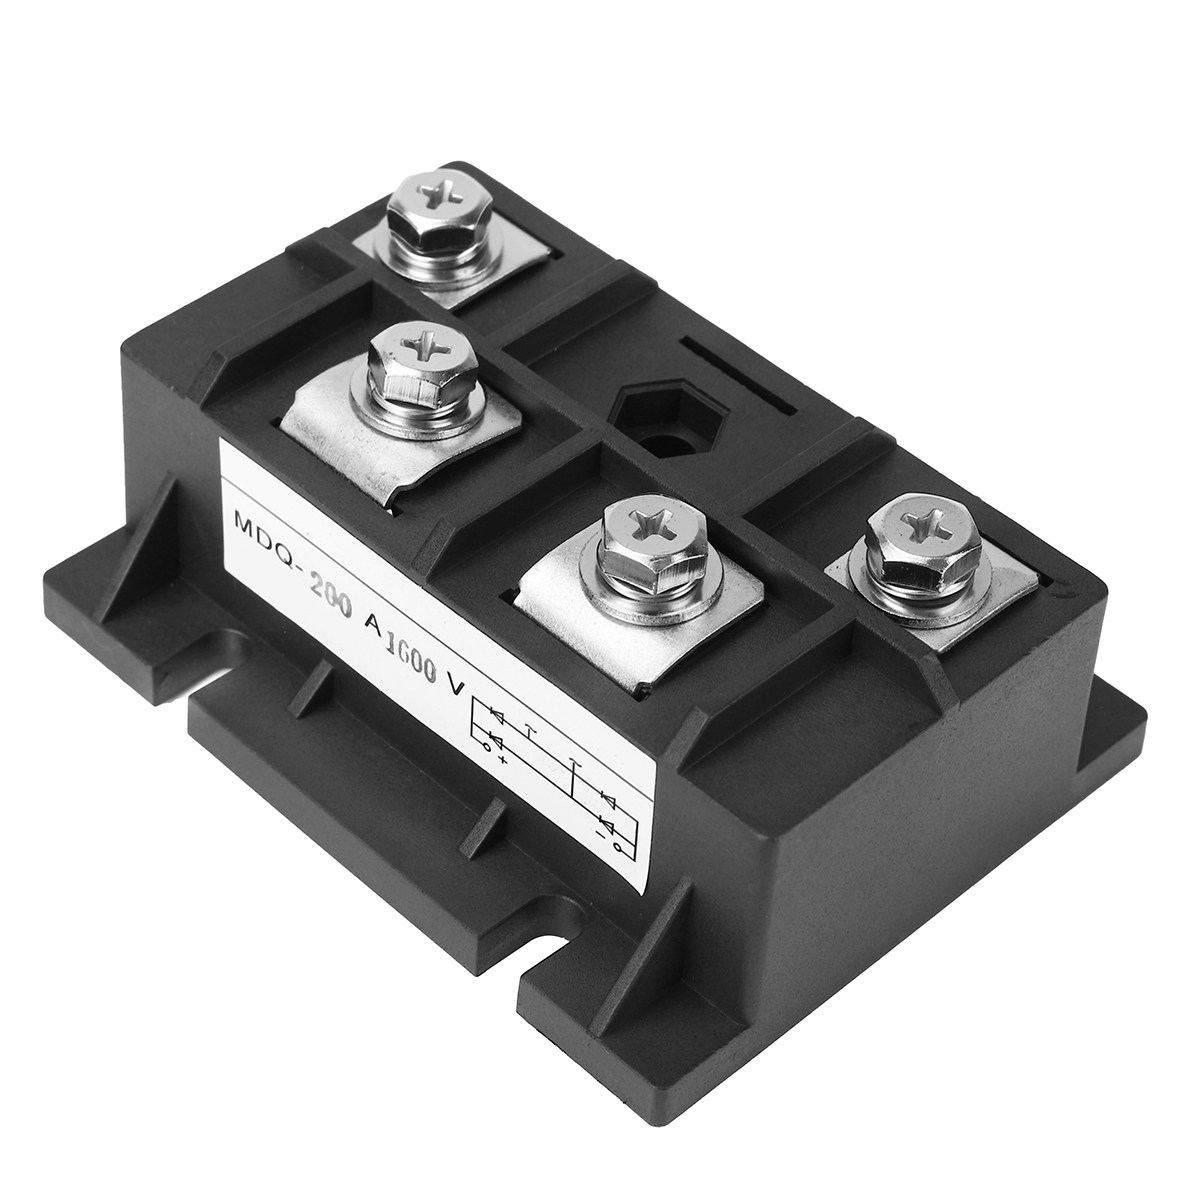 1PC 122241581320 200A 1600V Diode Module Single Phase Bridge Rectifier MDQ-200A Rectifiers Electronic Components & Supplies